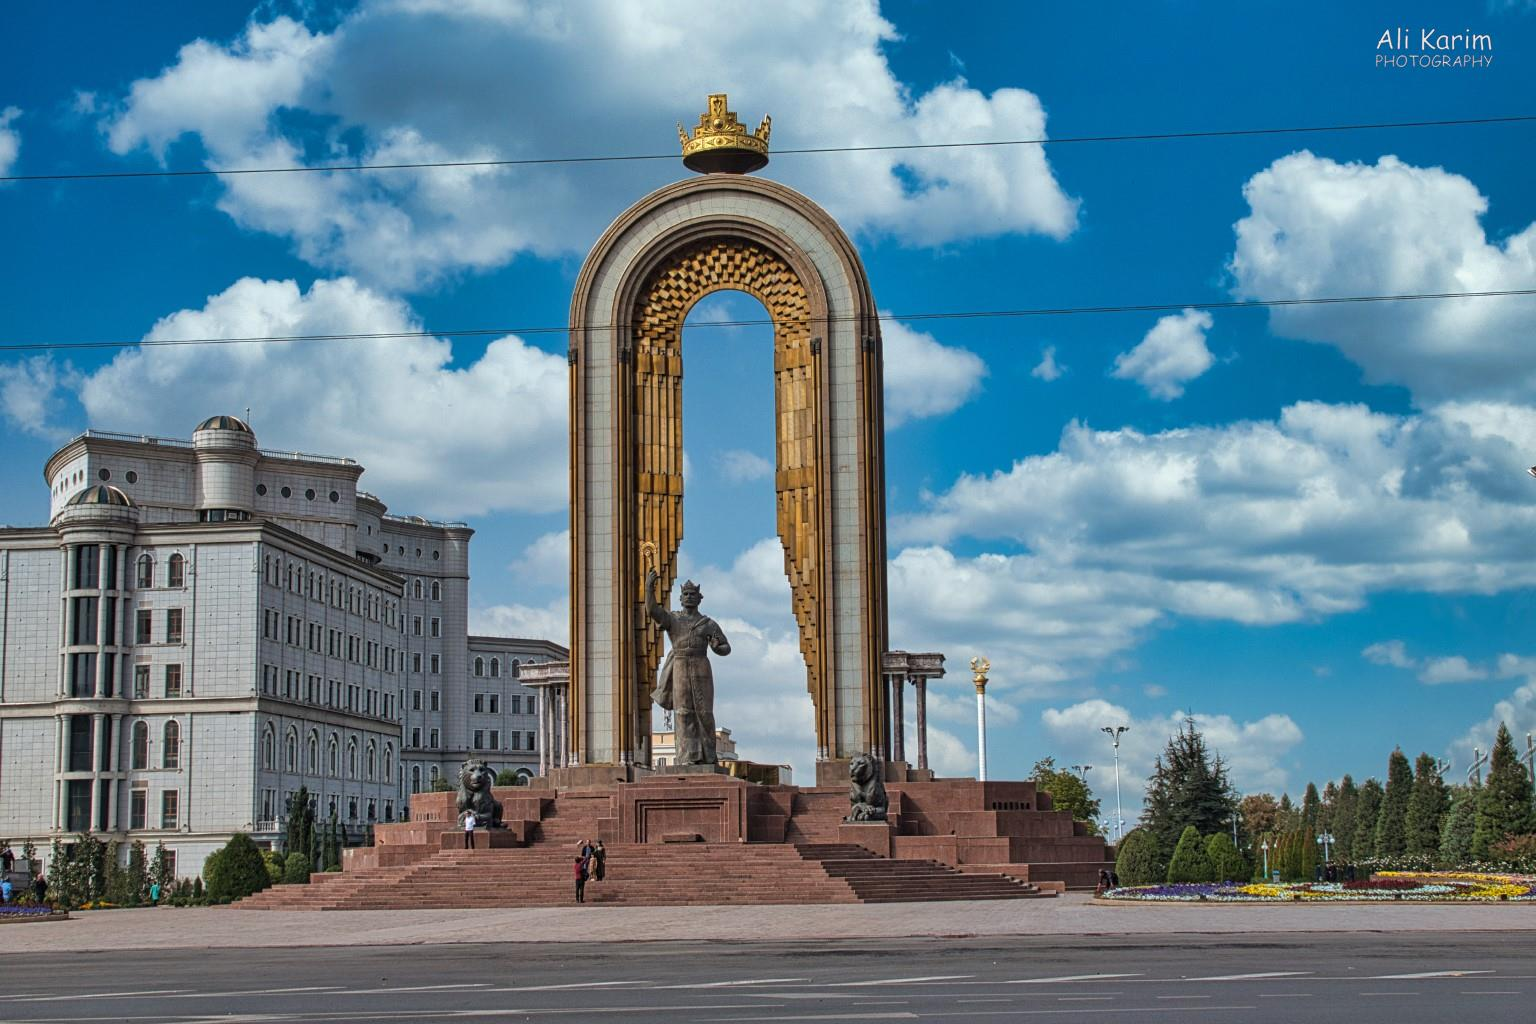 More Dushanbe, Tajikistan The mainstay was the majestic Ismoil Somoni statue and park